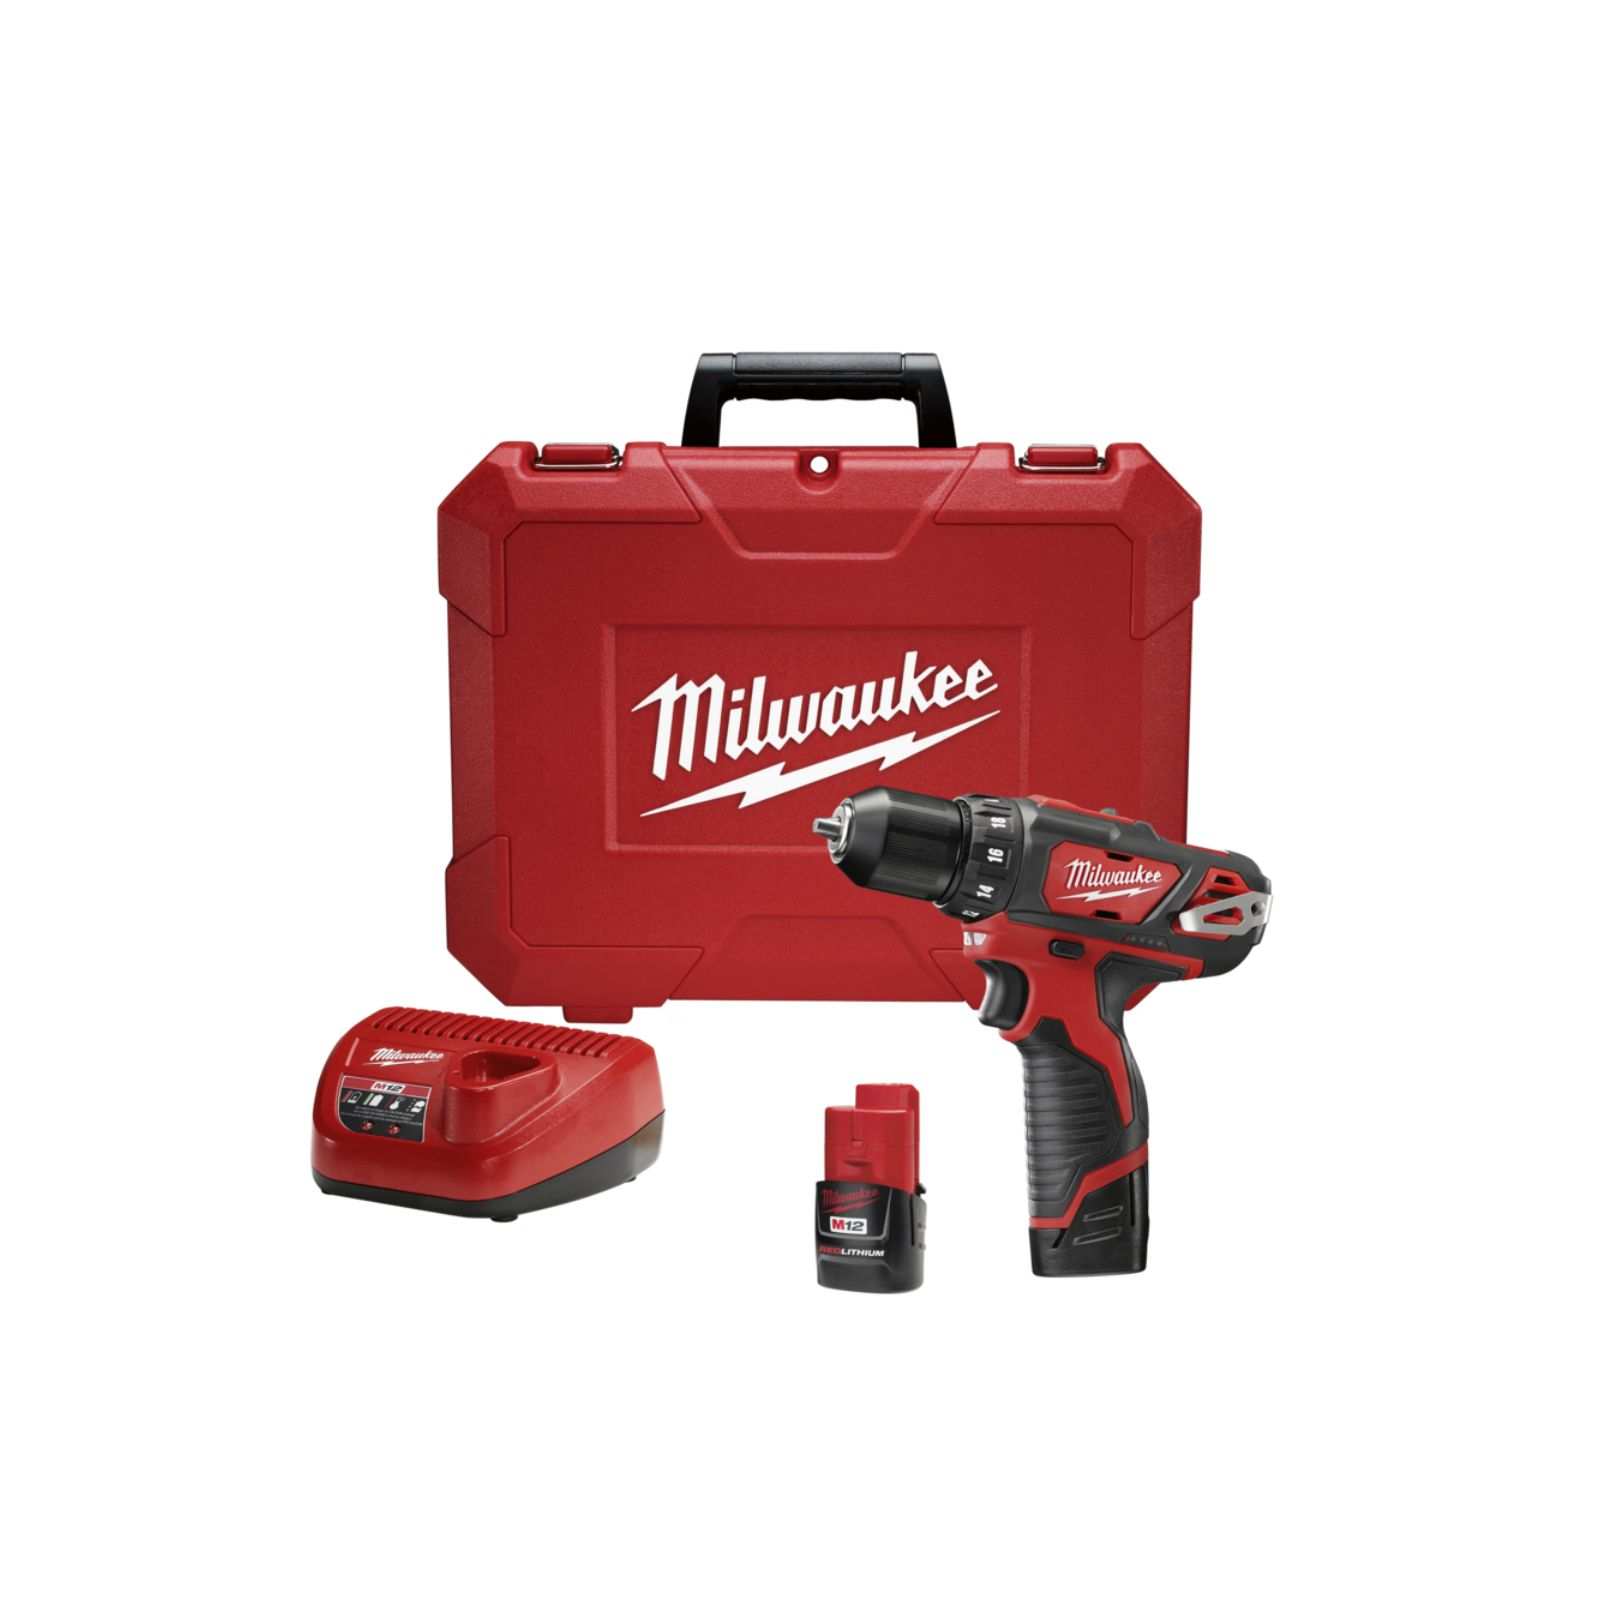 "Milwaukee 2407-22 - M12 3/8"" Drill/Driver Kit"